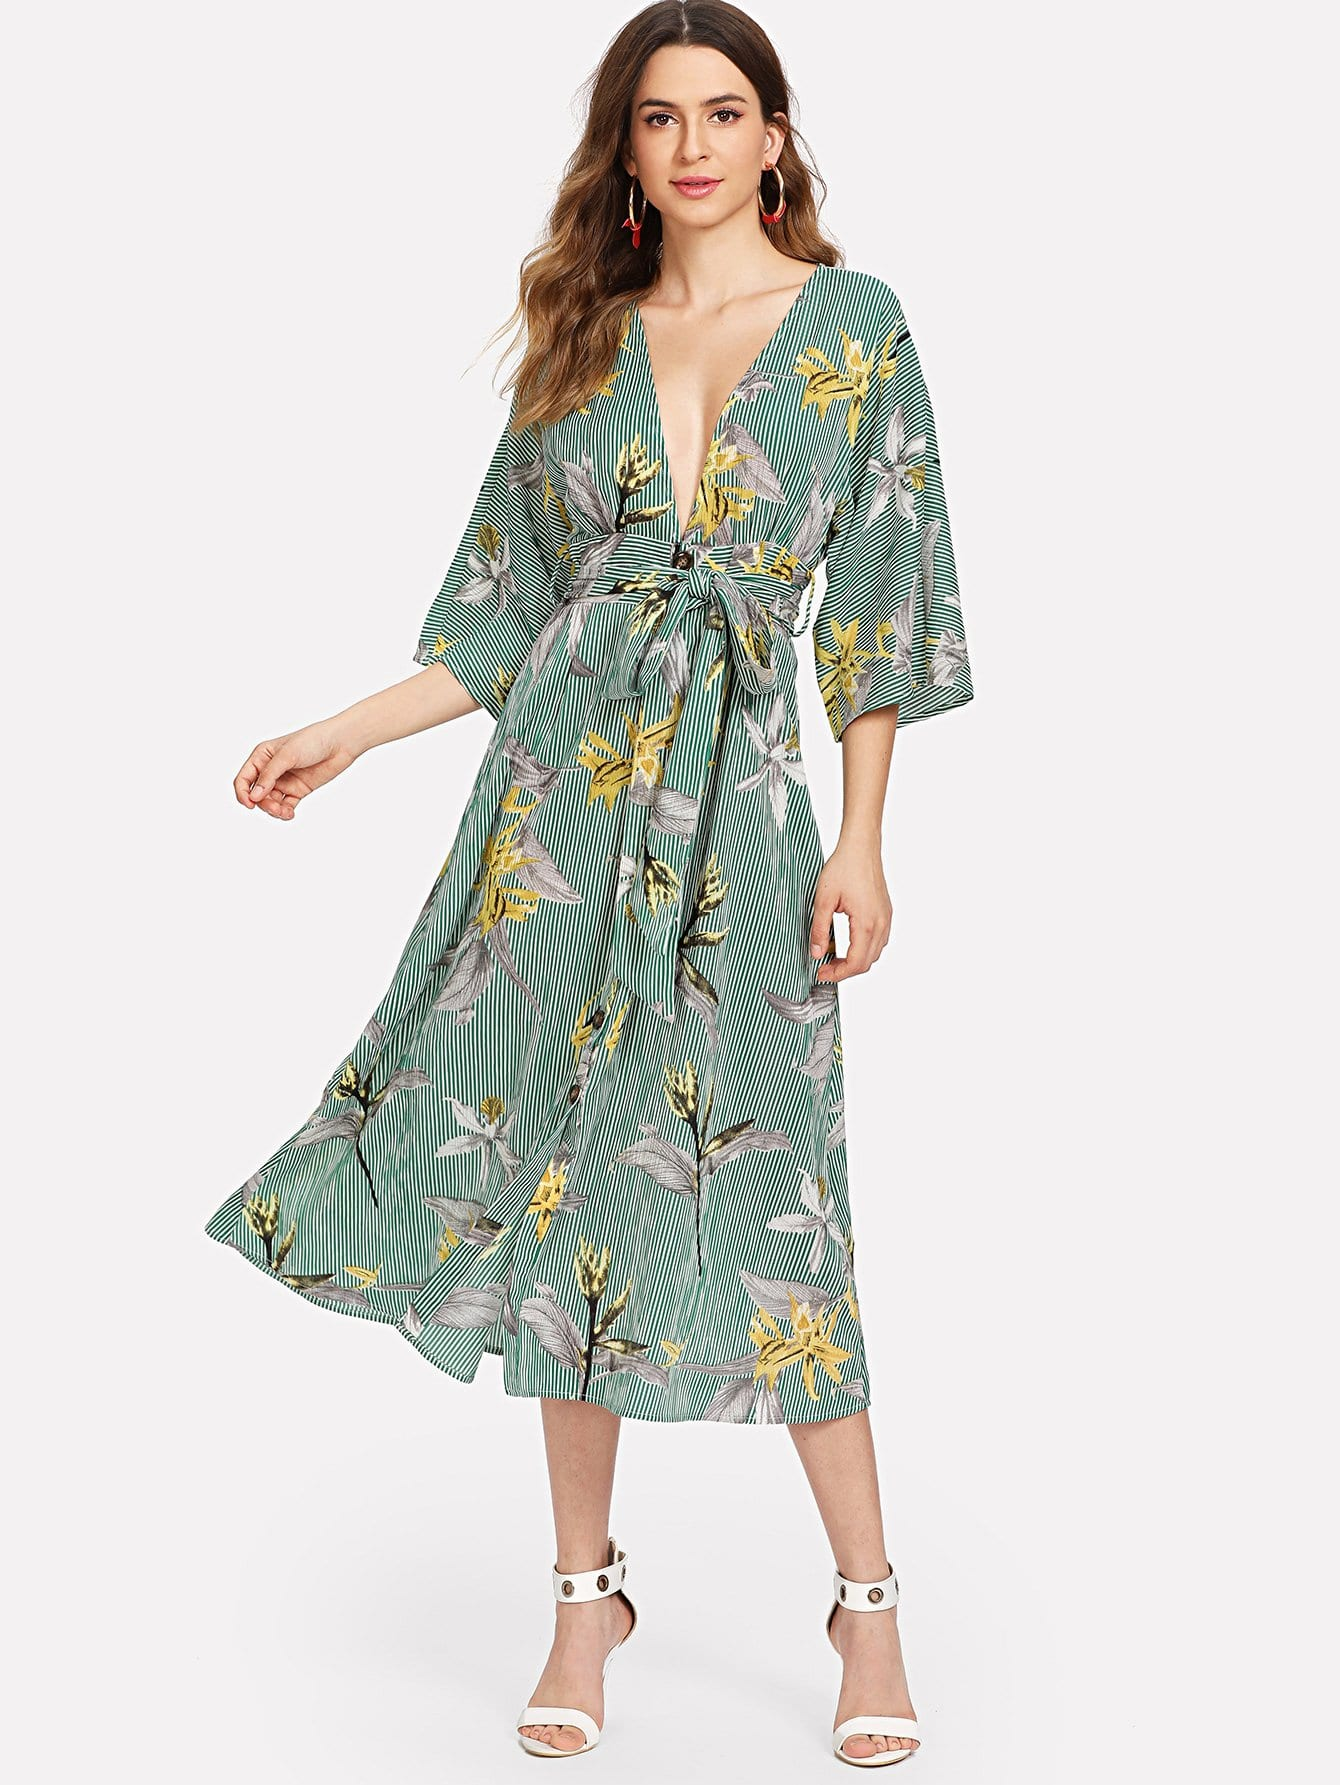 Mixed Print Plunging Neck Self Belted Dress mixed print plunging neck self belted dress